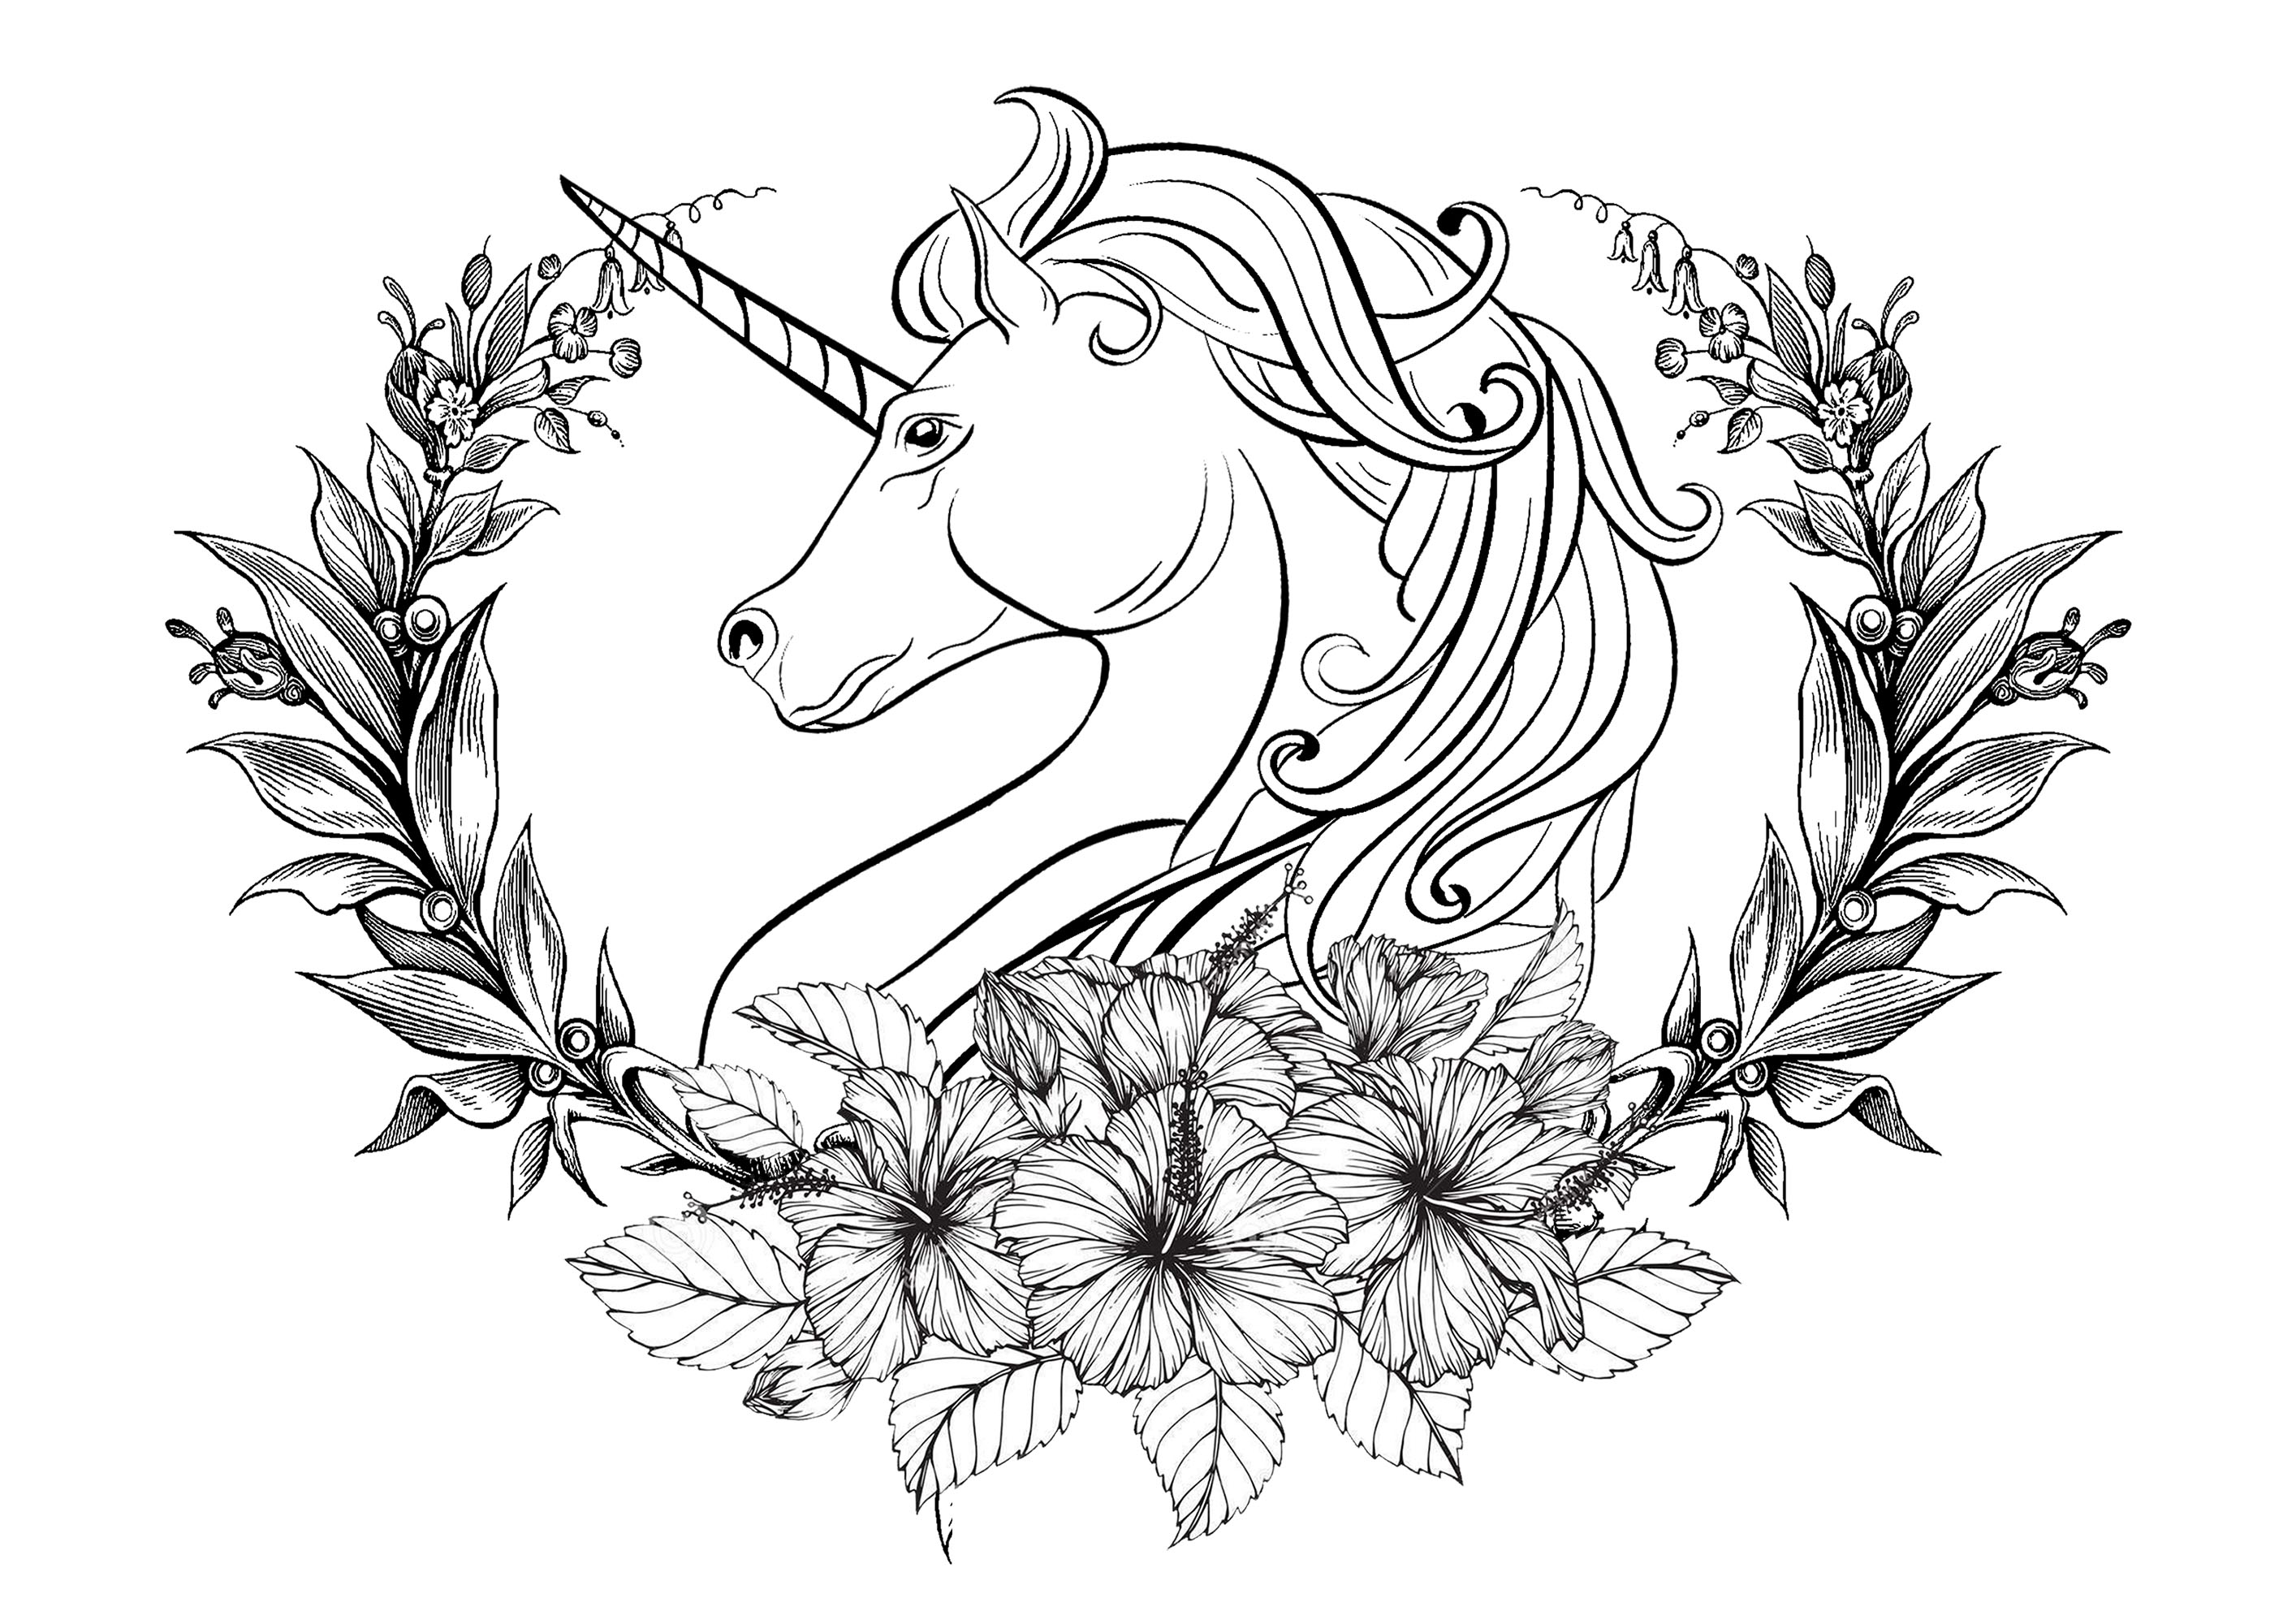 Beautiful unicorn head surrounded by a laurel wreath with flowers of various sizes on the